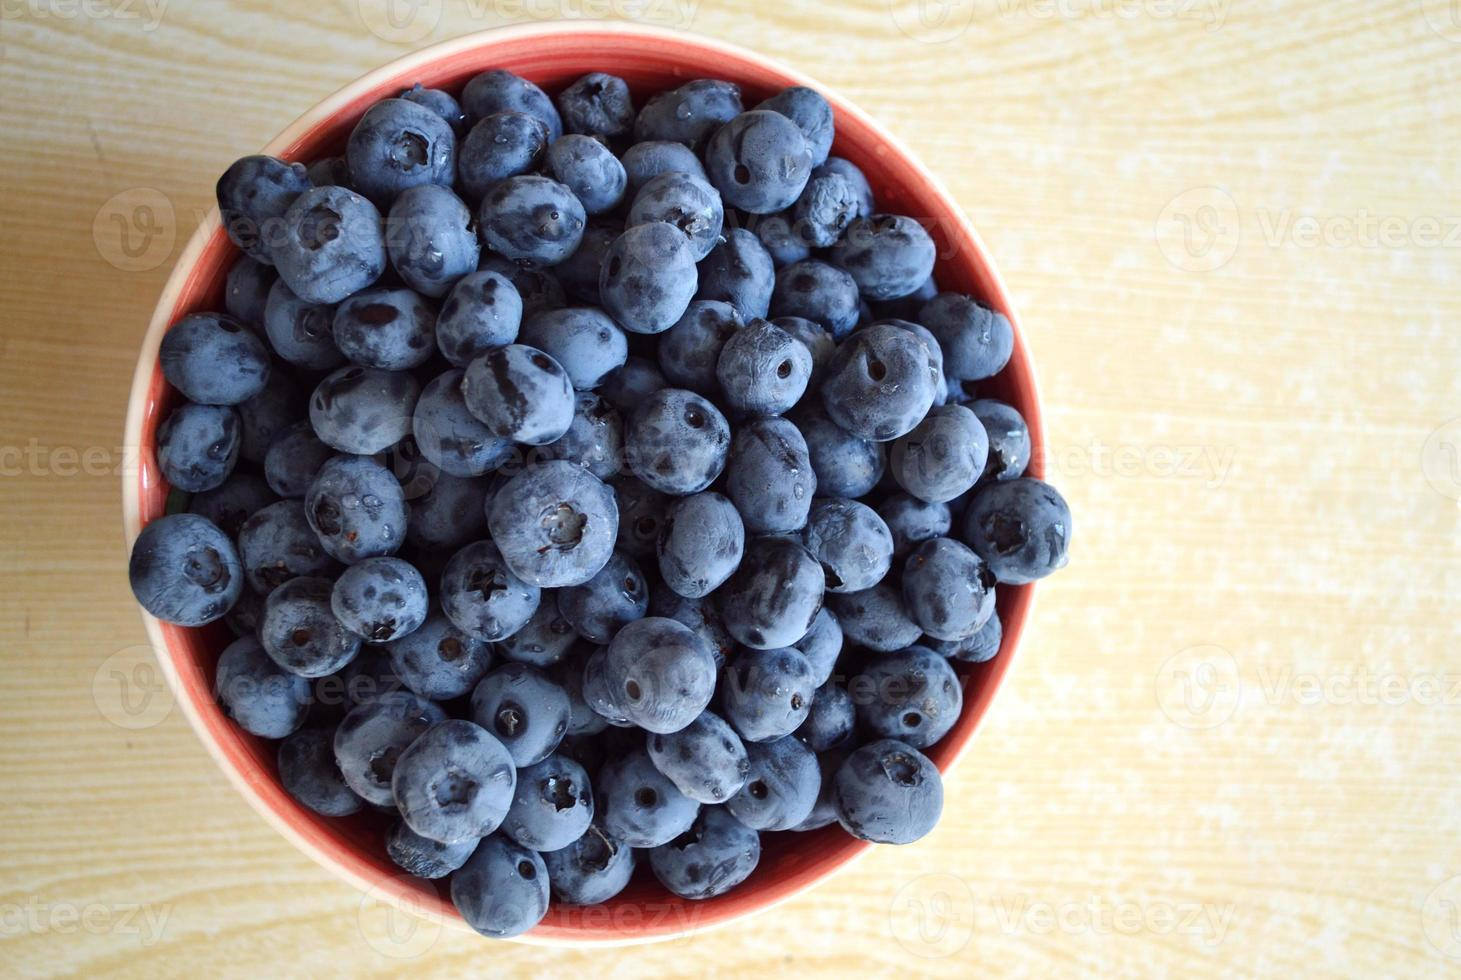 Healthy and delicious blueberries in a bowl photo